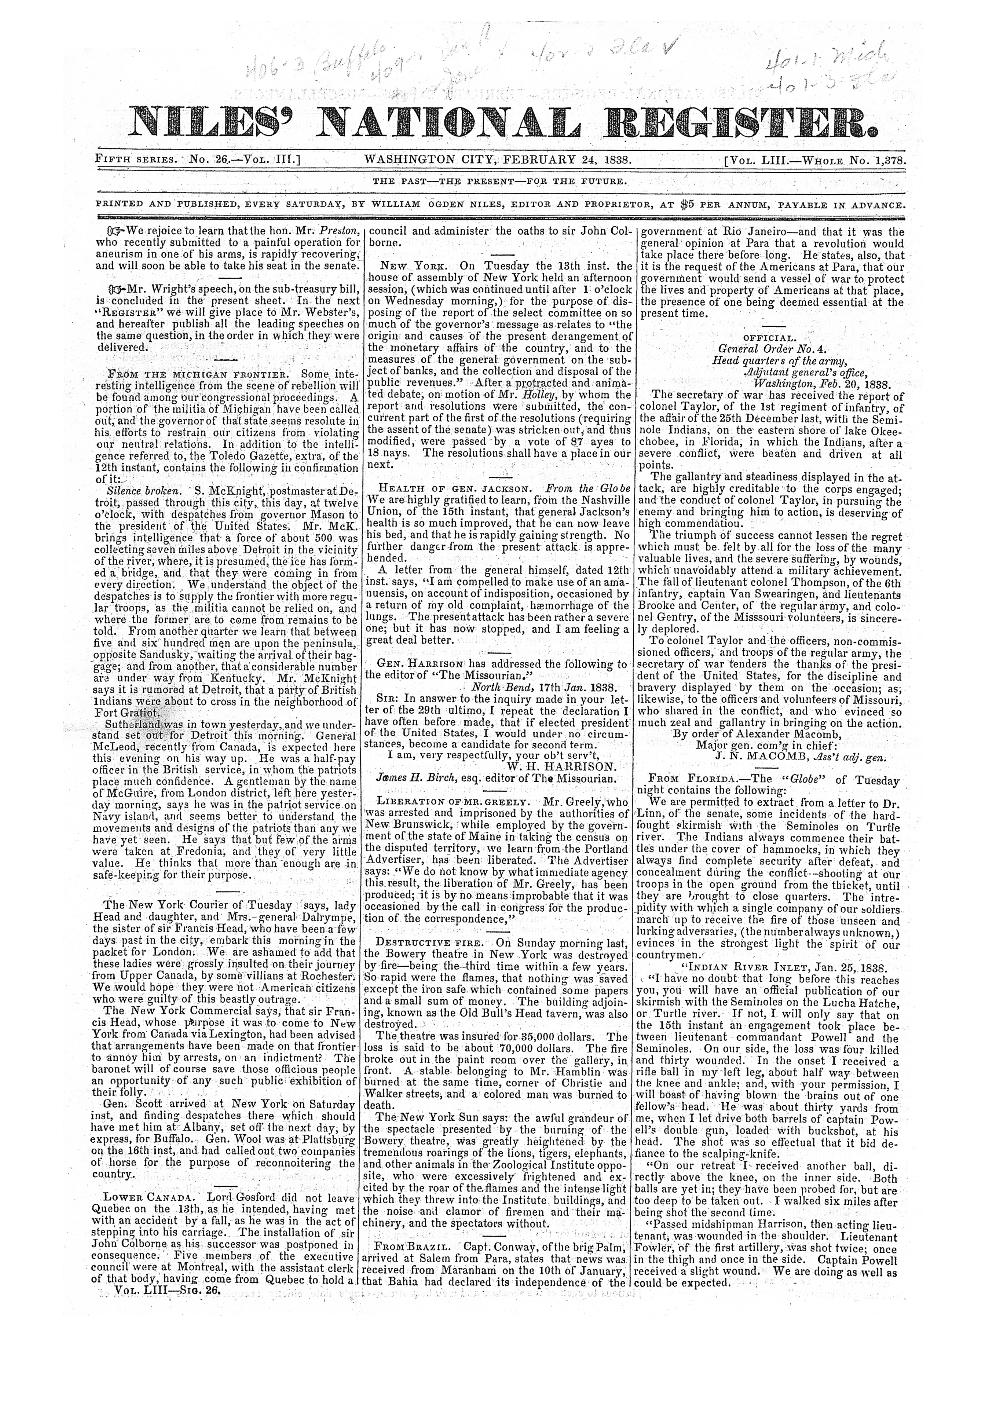 Niles' national register - page 401